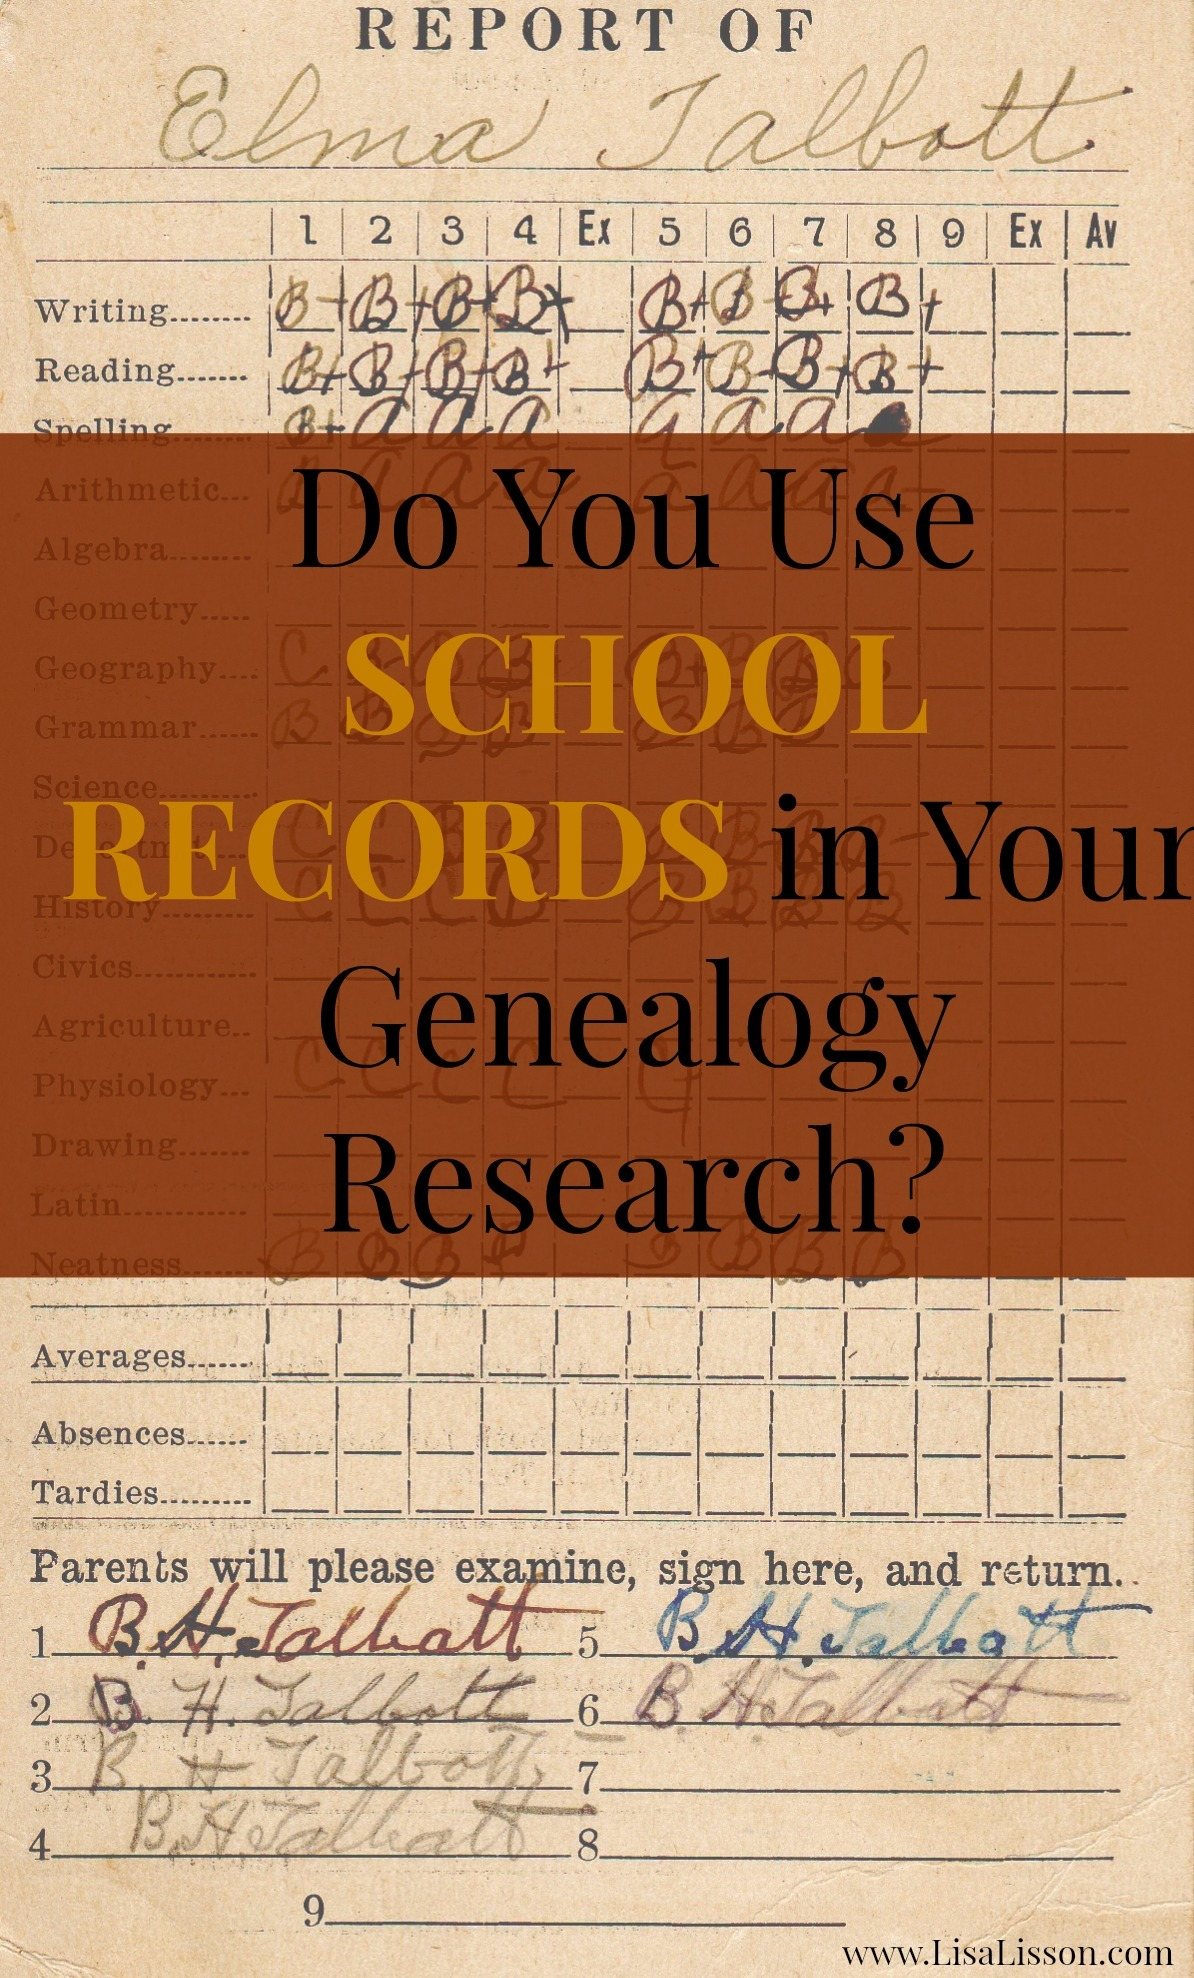 Do You Use School Records in Your Genealogy Research?